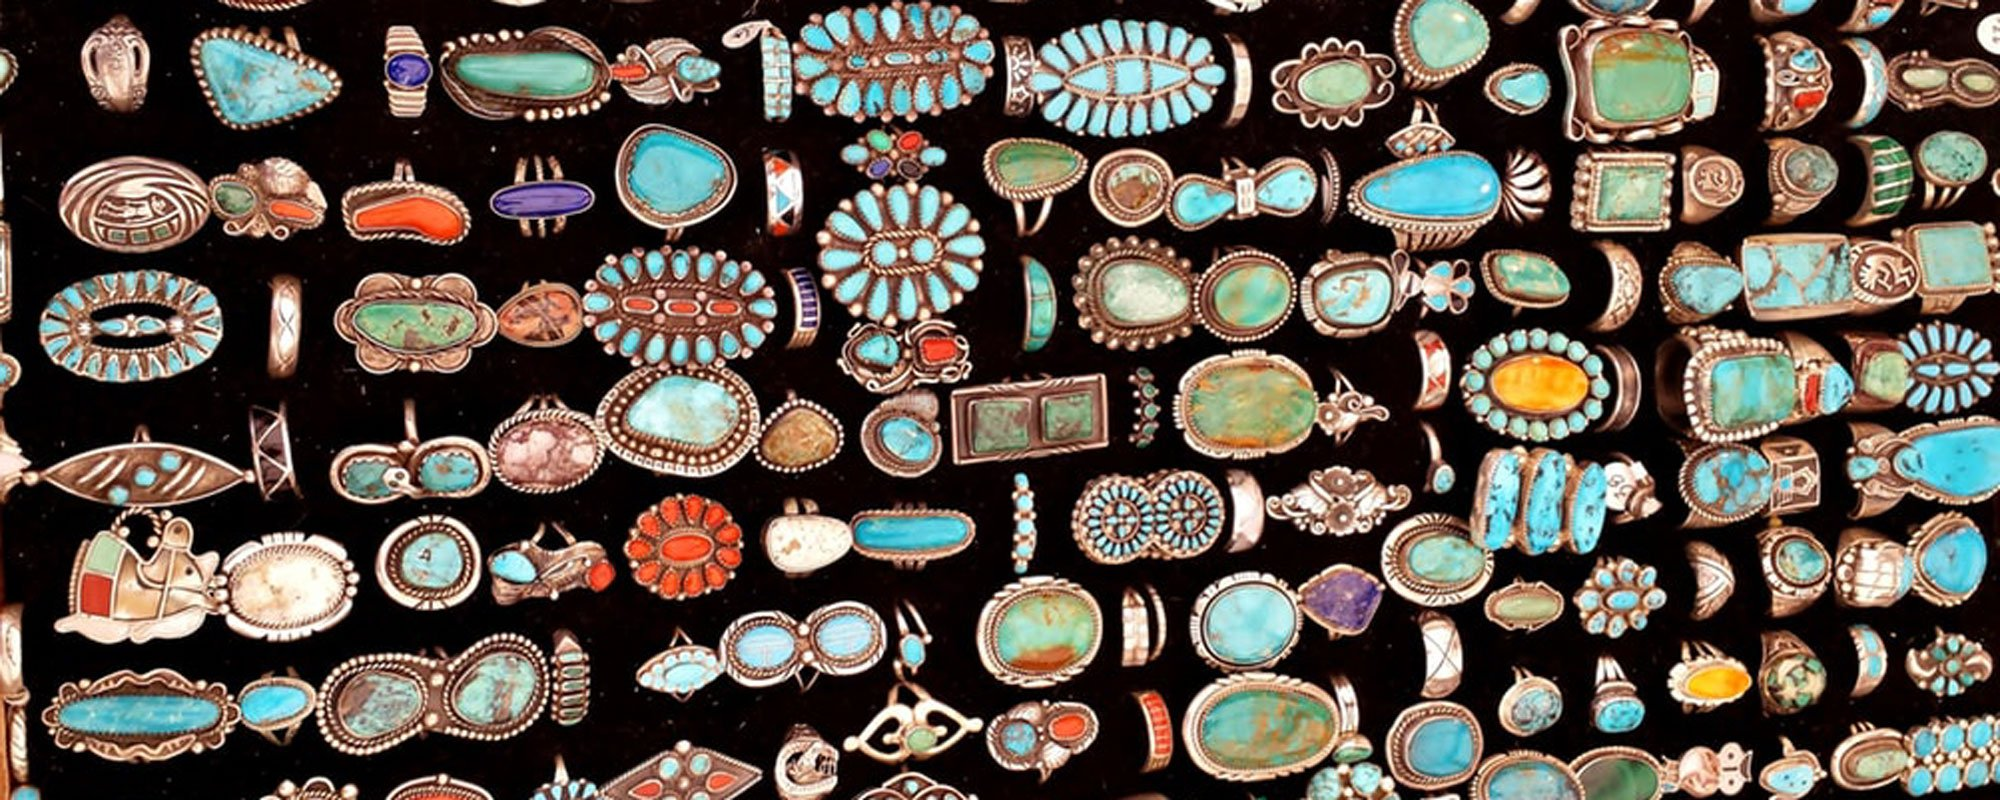 turquoise jewelry display